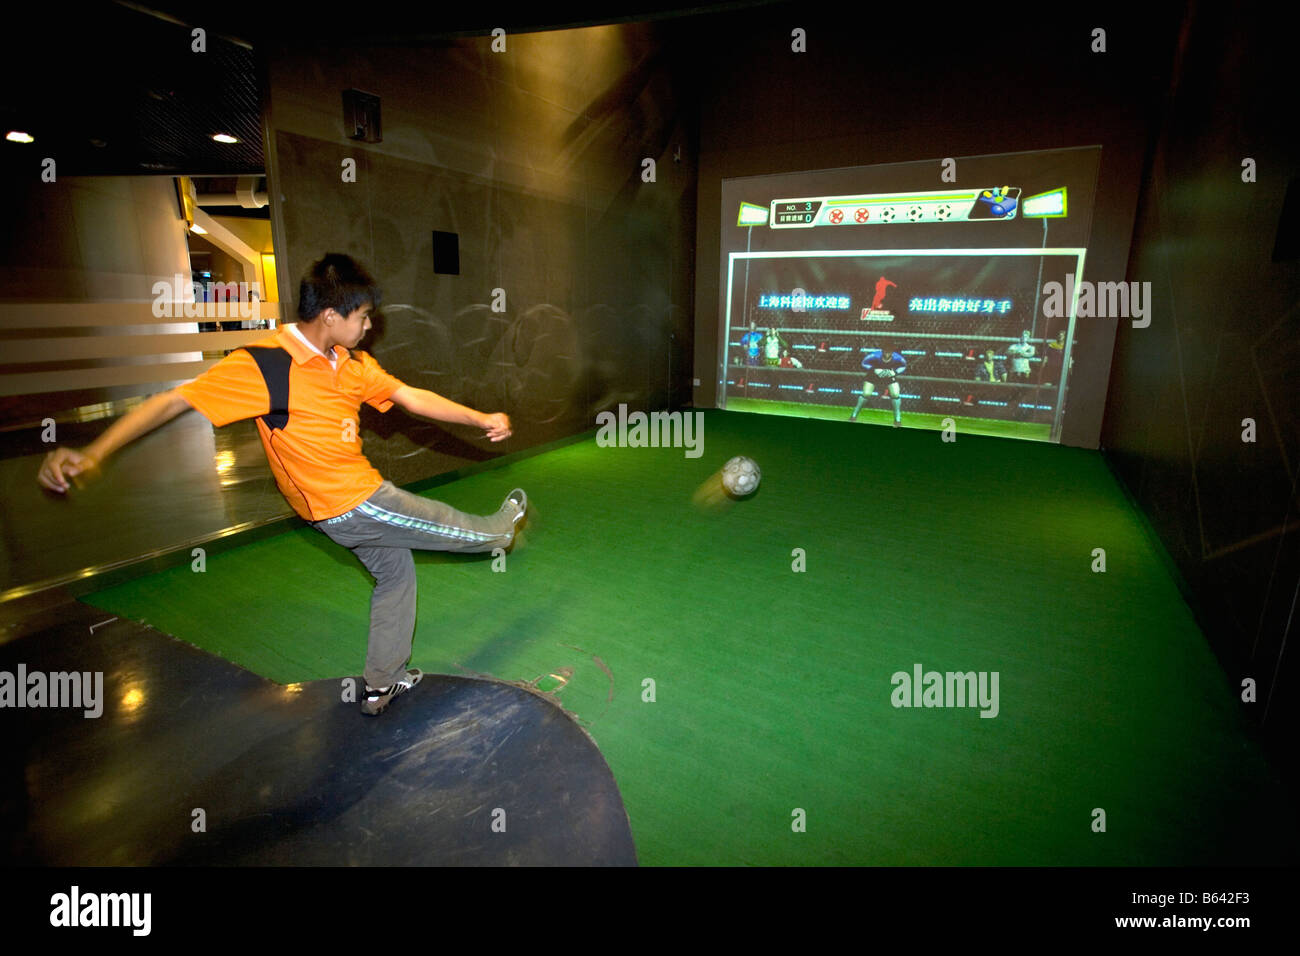 China, Shanghai, Shanghai Science and Technology Museum. Soccer/ Football. - Stock Image